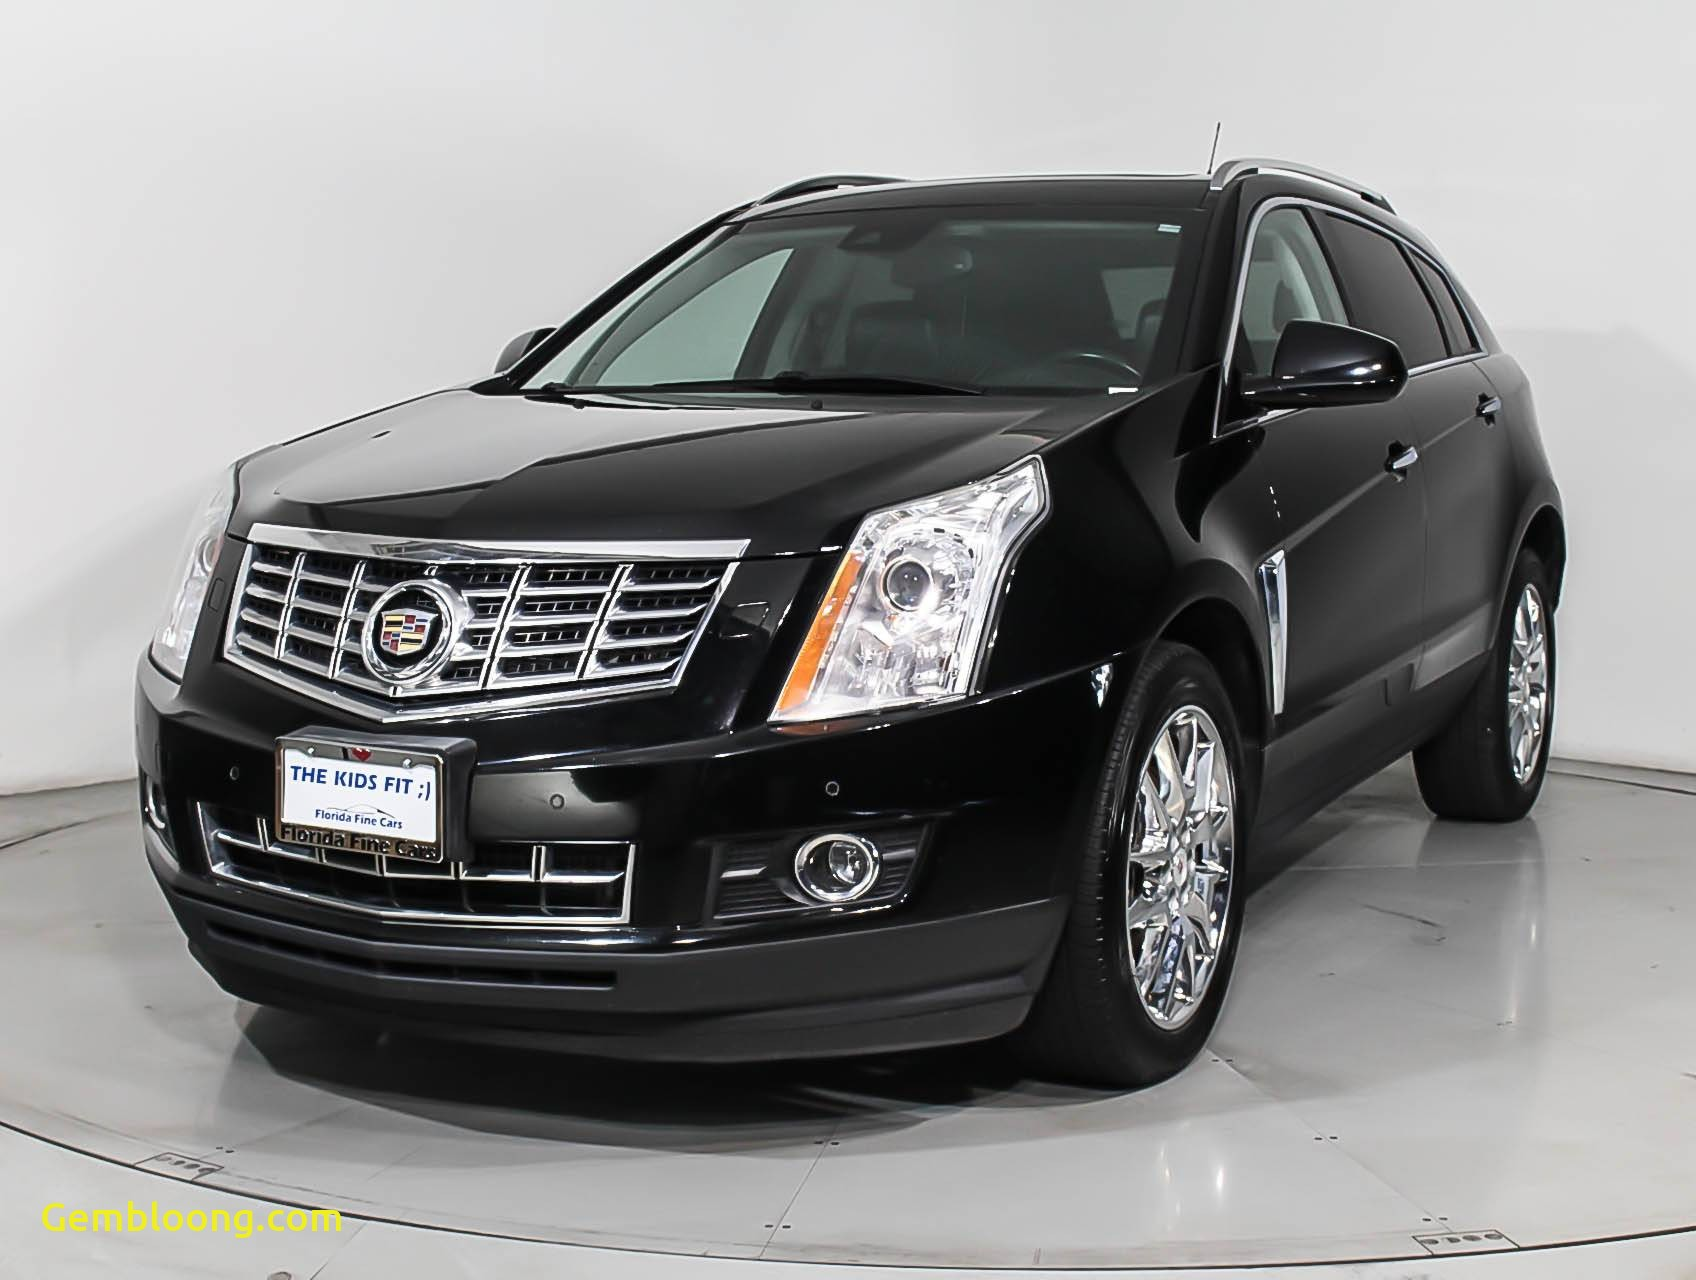 2013 Cadillac Srx Lovely Used 2013 Cadillac Srx Performance Suv for Sale In Miami Fl